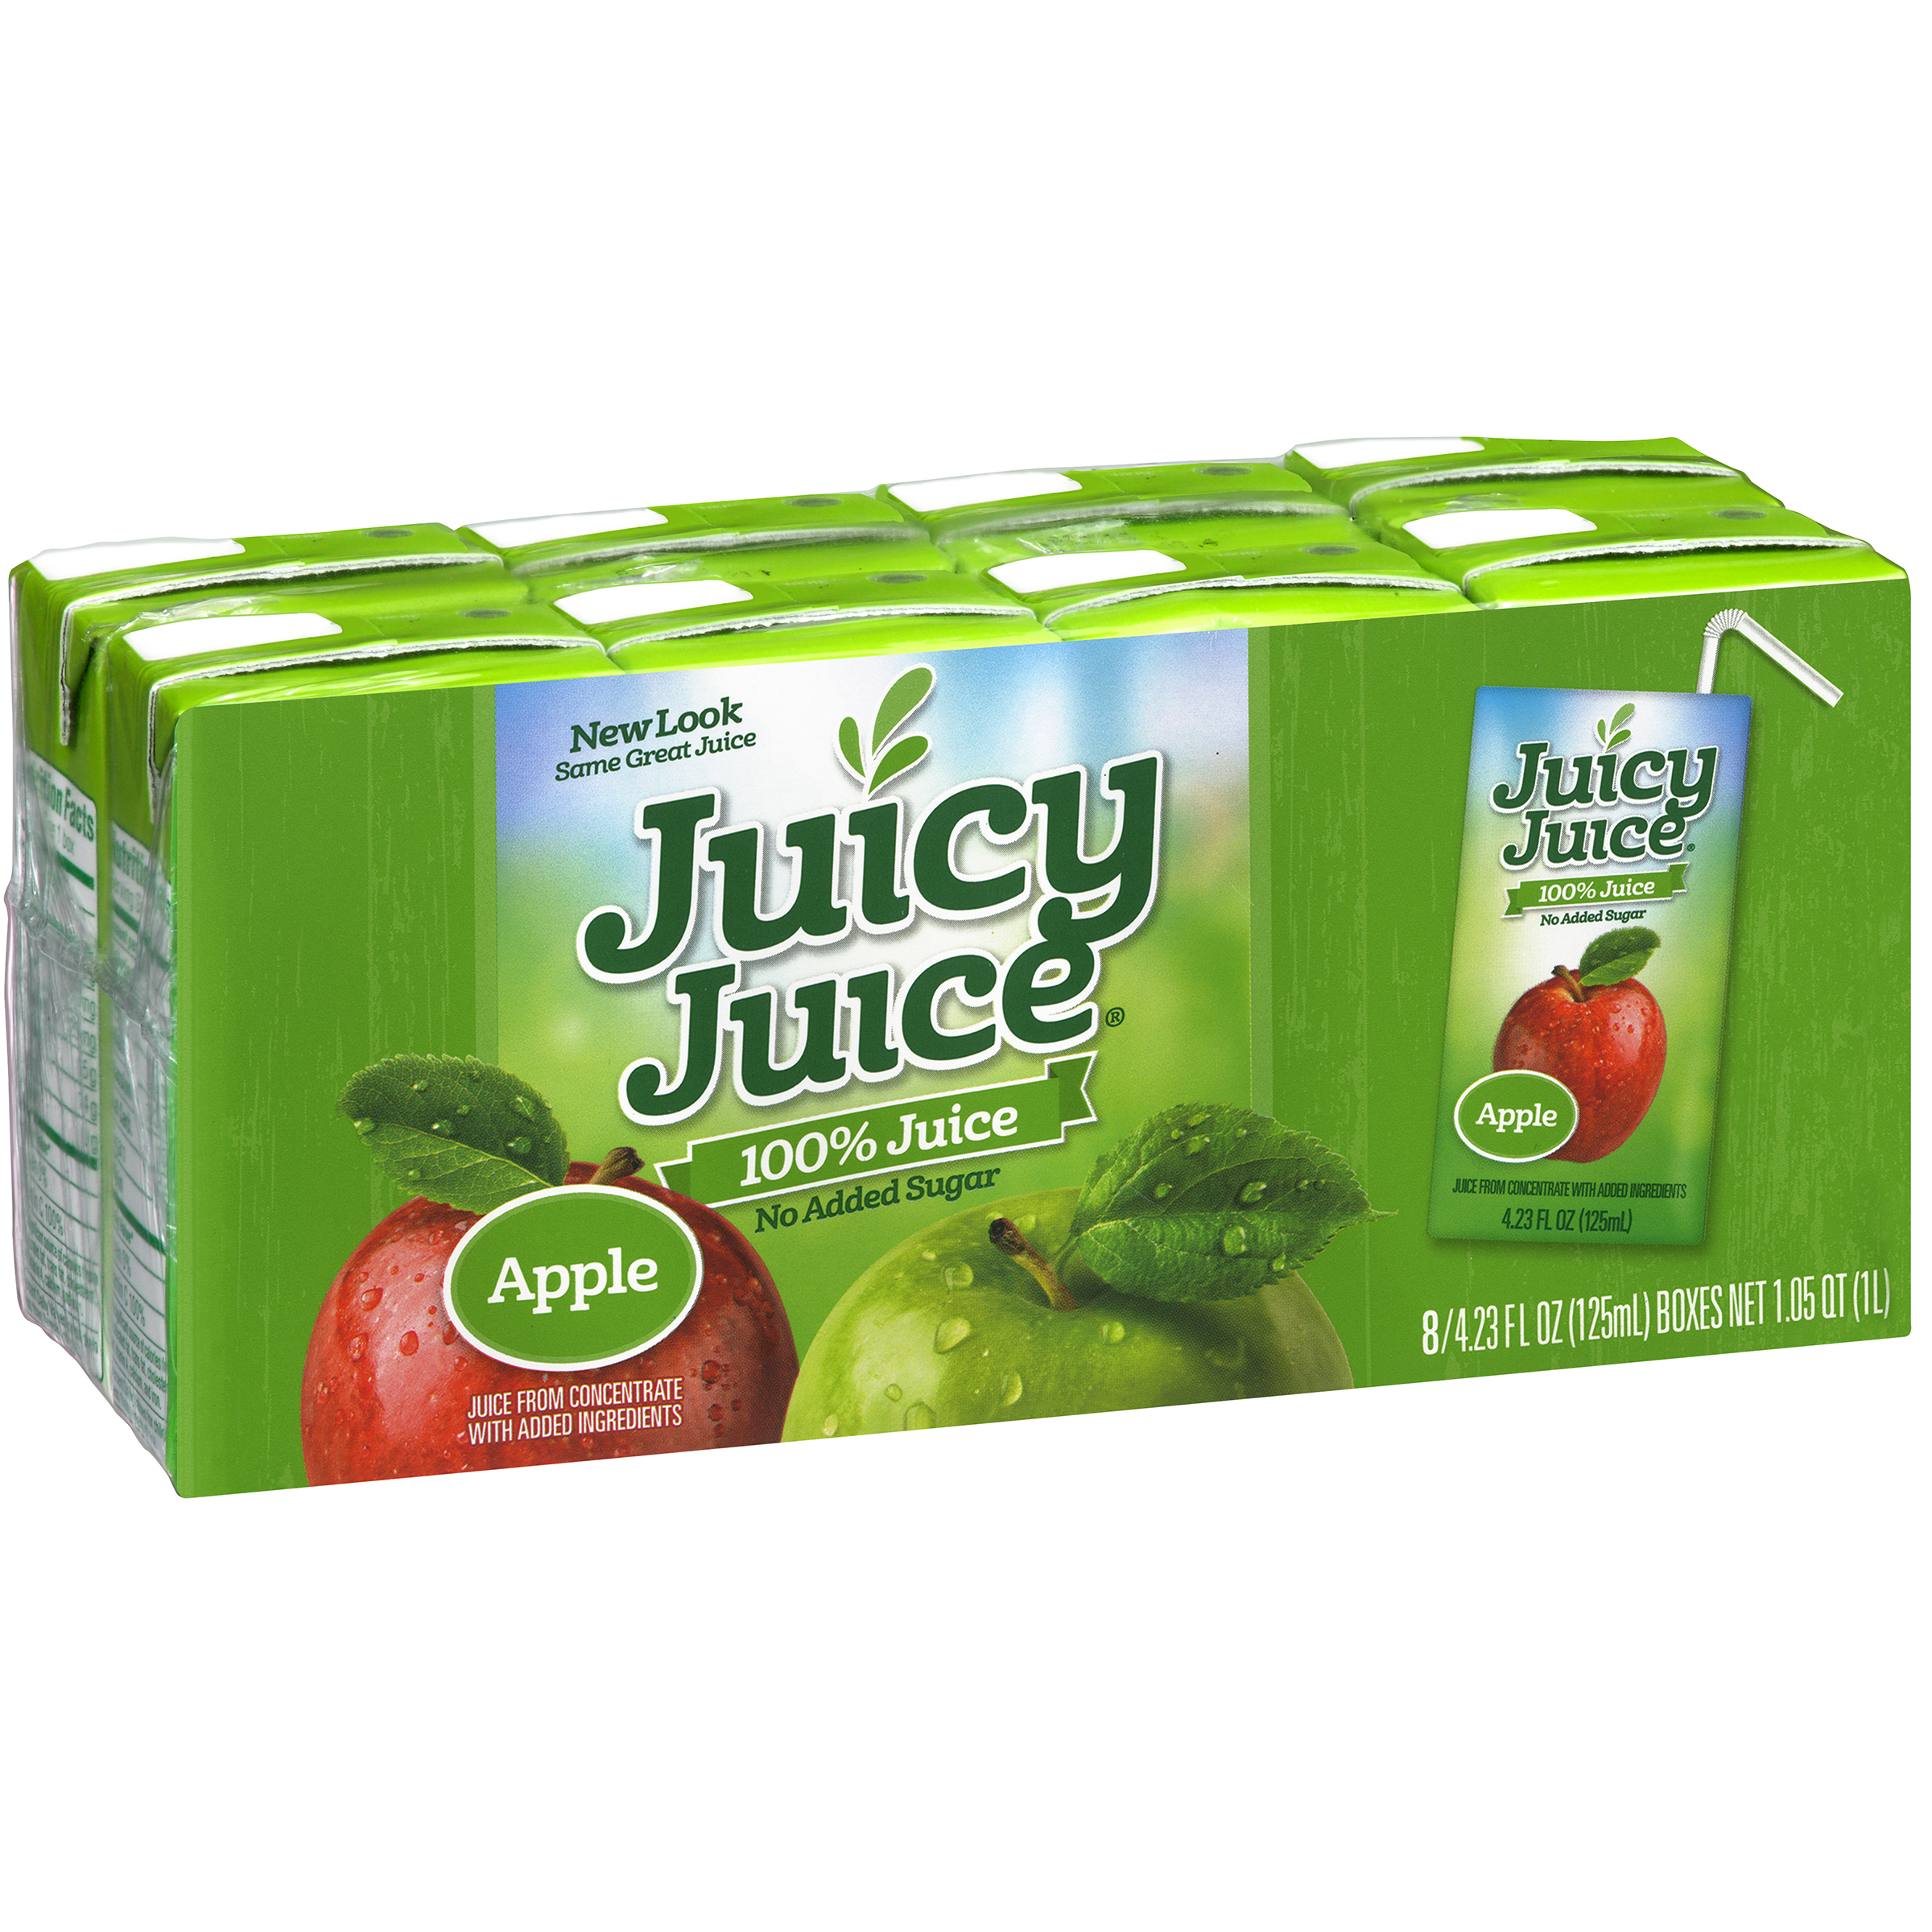 Juicy Juice�� Apple 100% Juice 8-4.23 fl. oz. Boxes